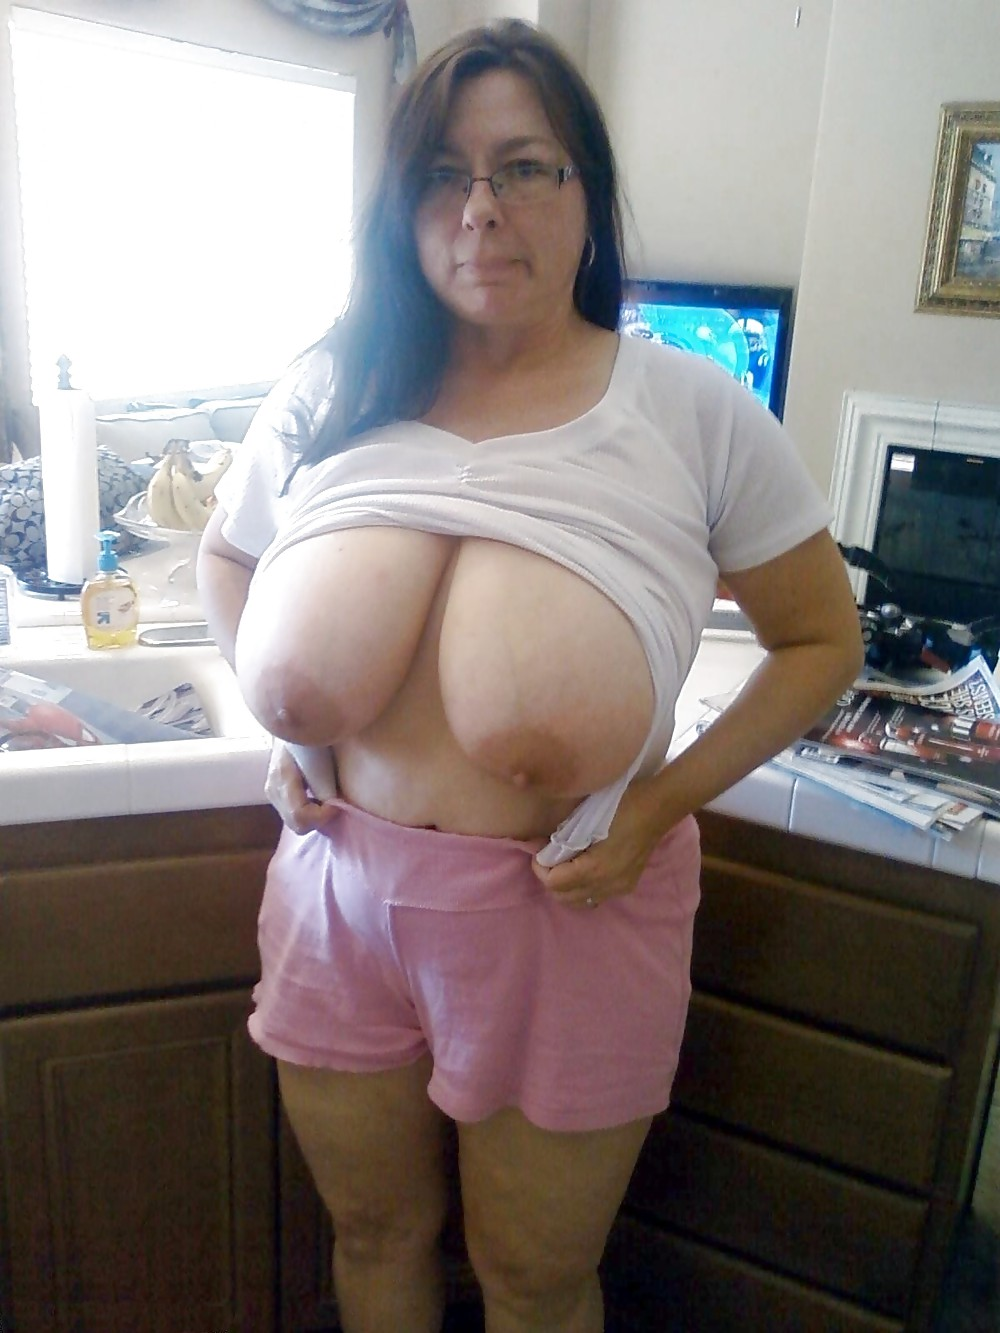 Just Huge Natural Tits - Teens To Milfs - 31 Pics  Xhamster-4528